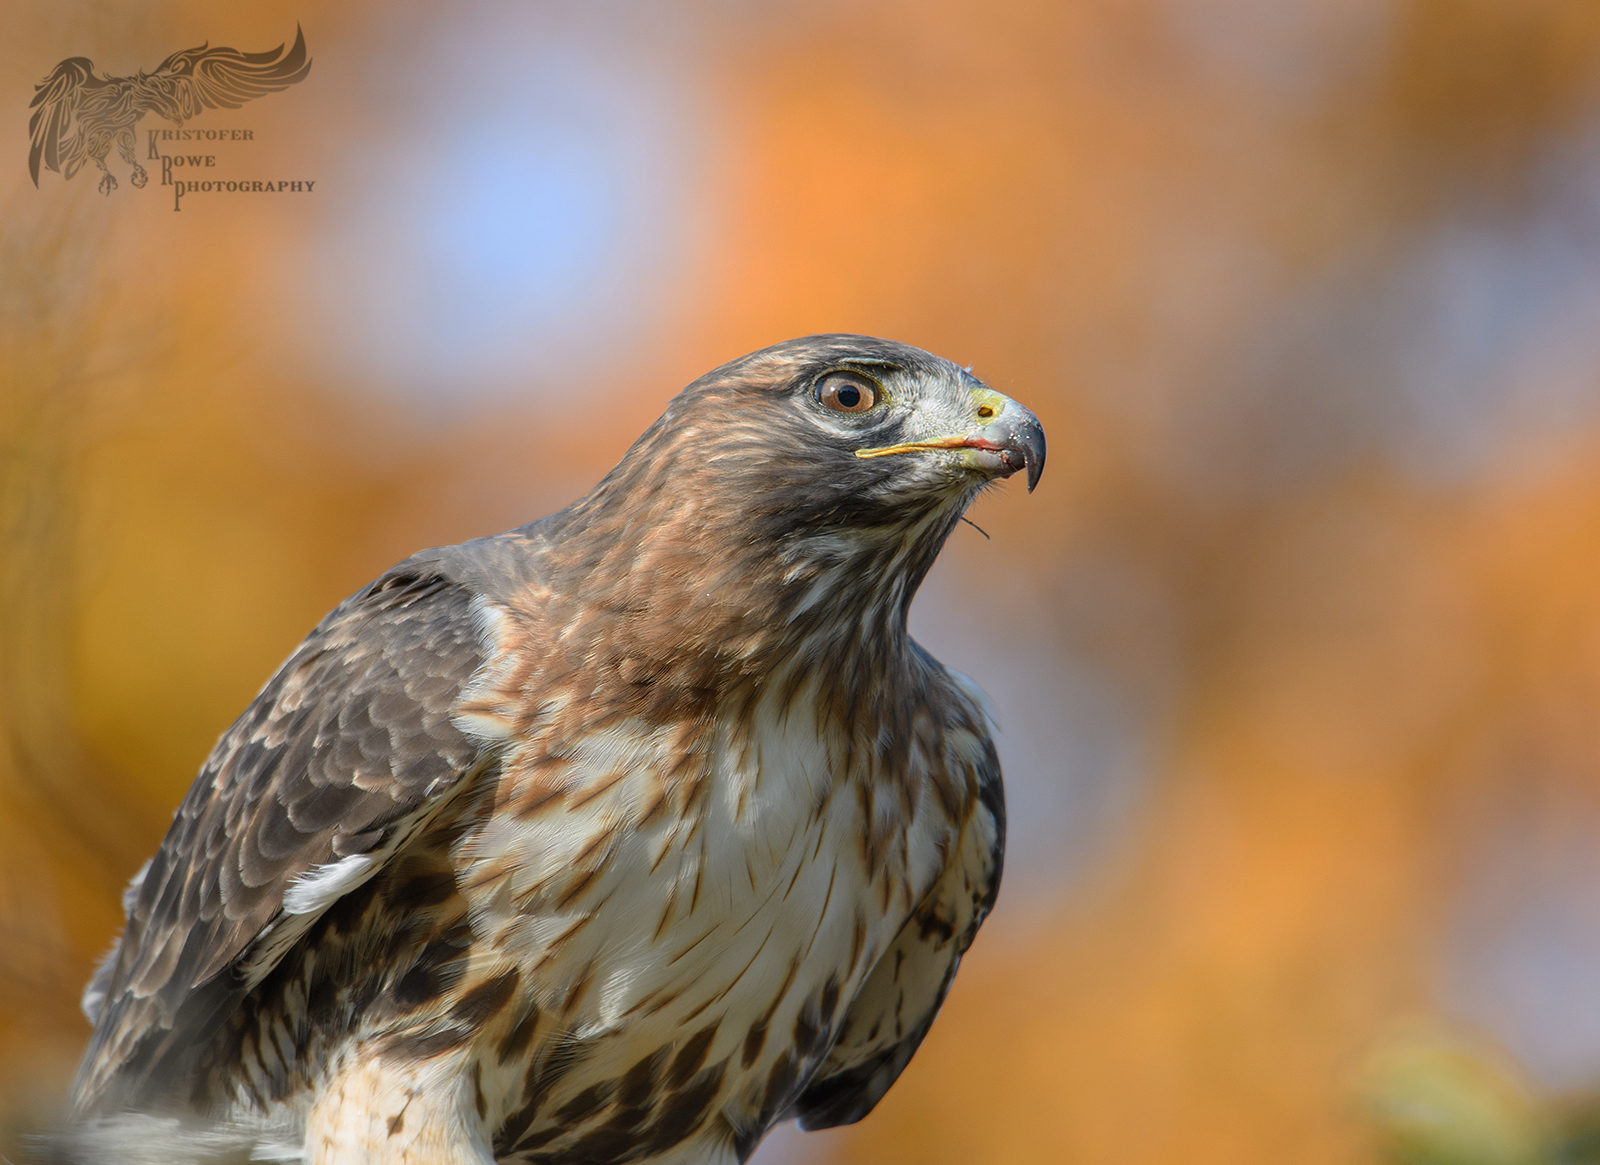 D500, Tamron 150-600 G2 and Red Tail Hawk: Nikon Pro DX SLR (D500